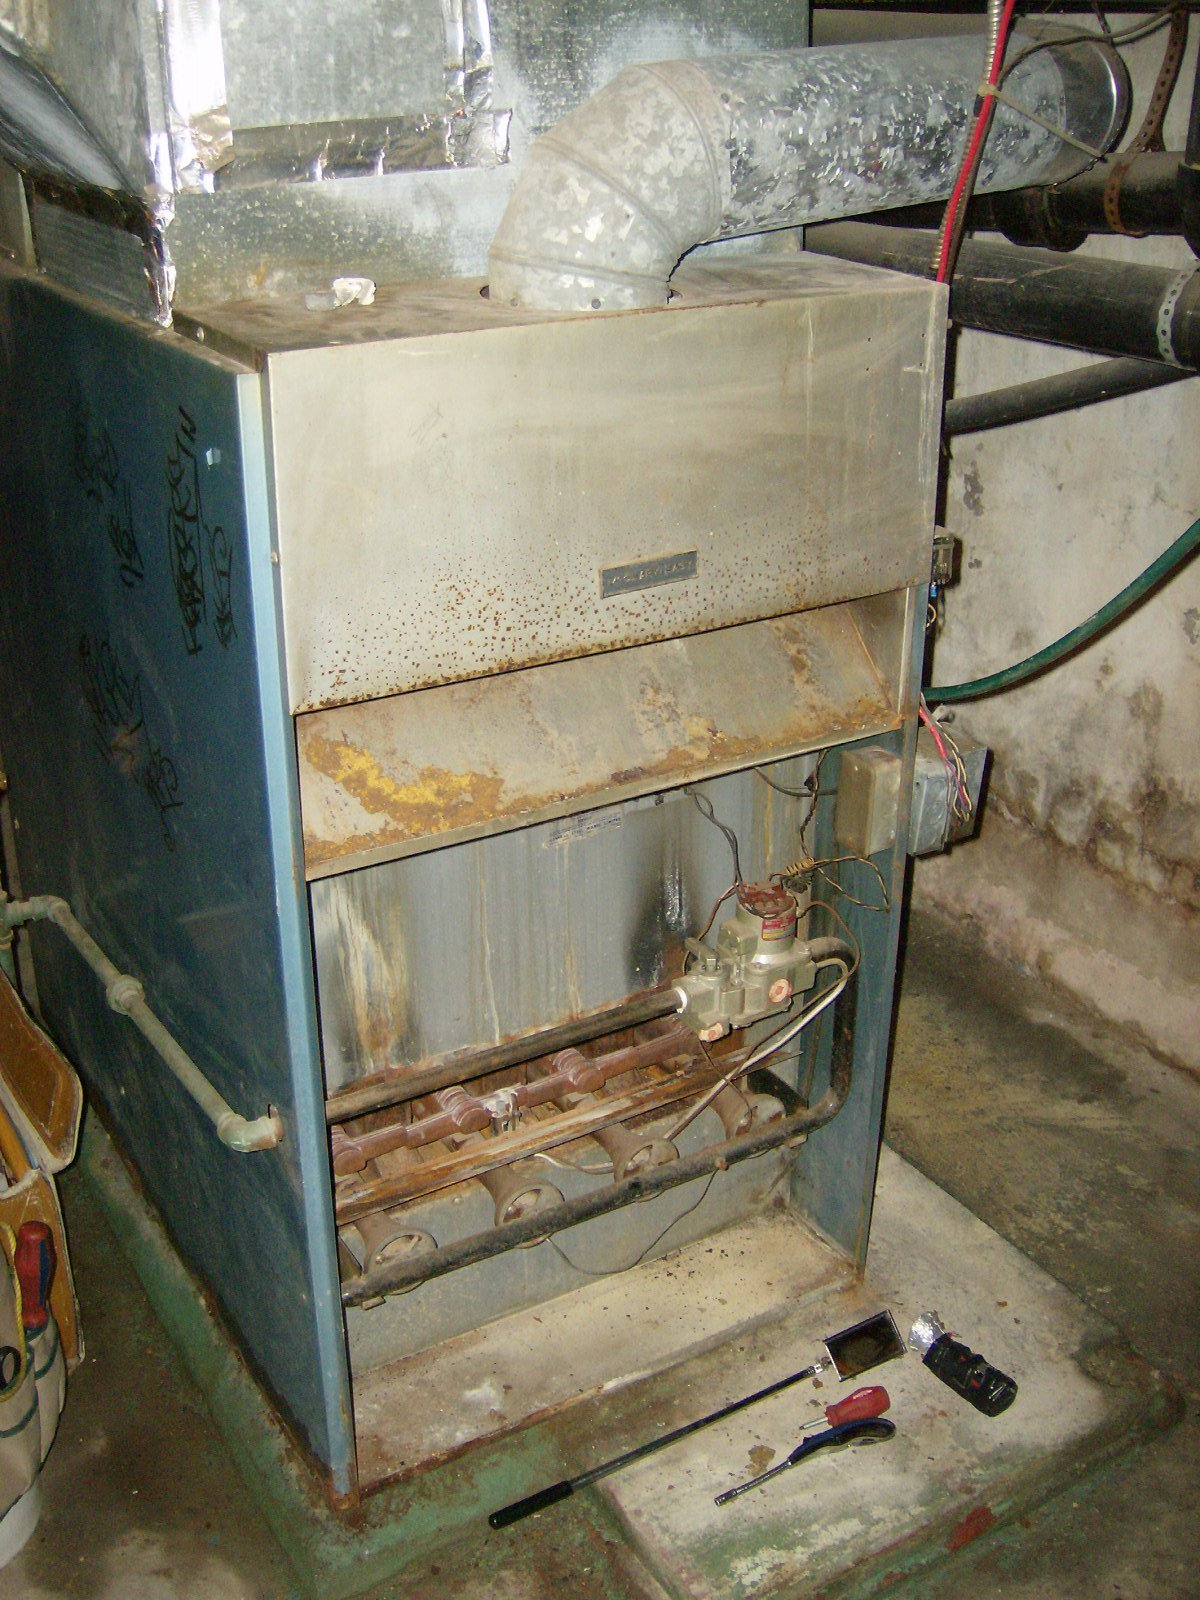 A rusted, dirty, old furnace that needs repair